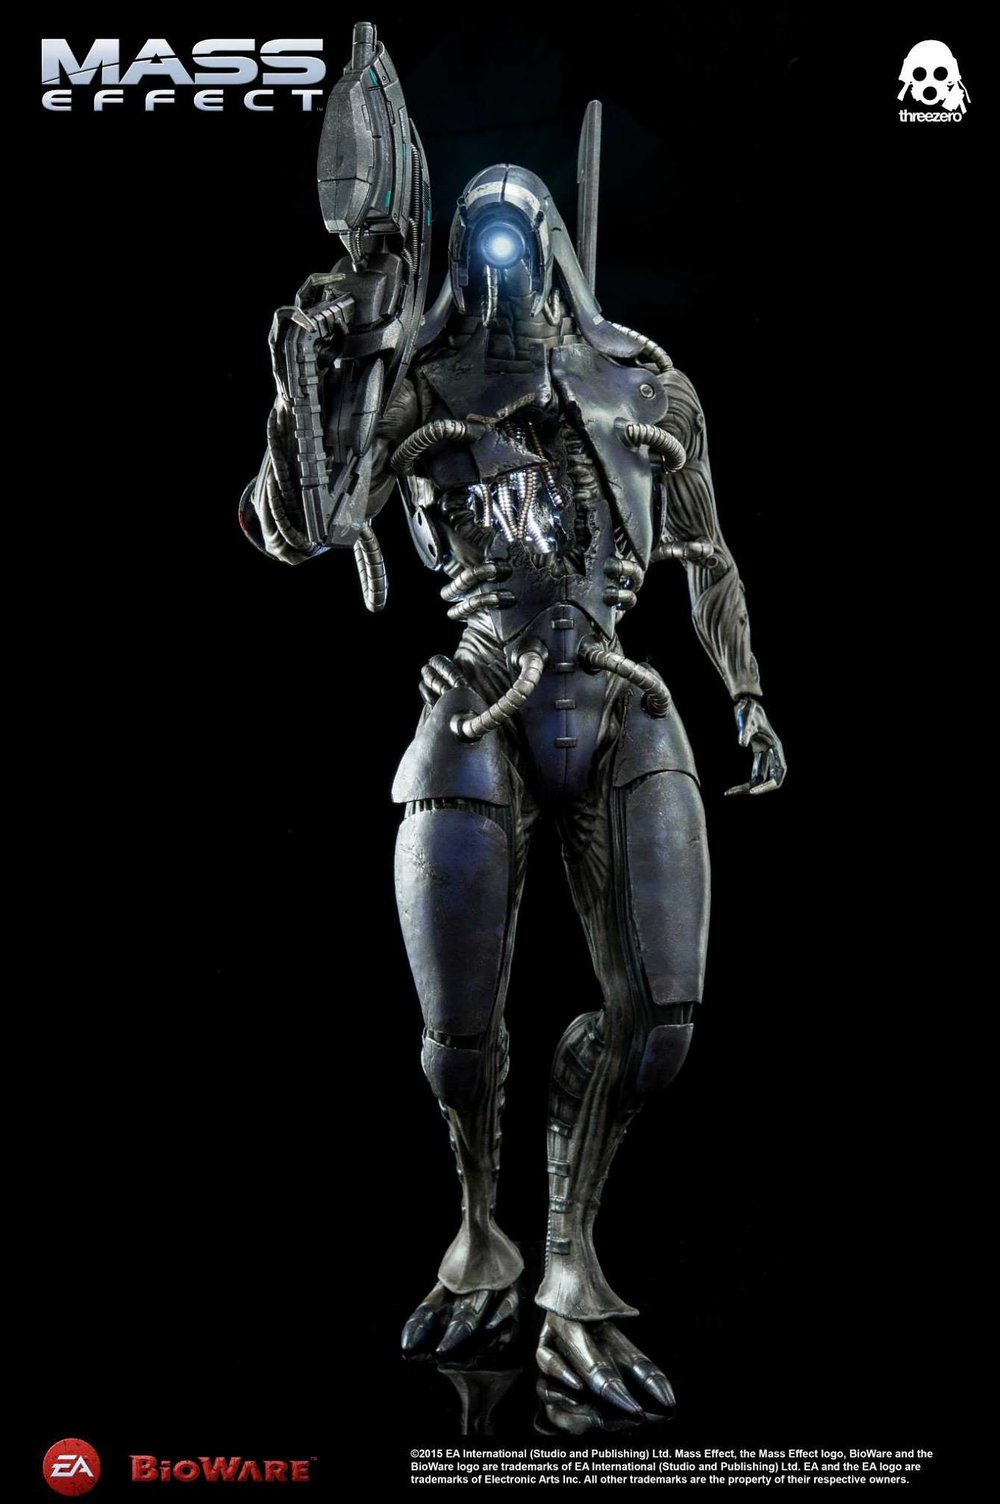 ThreeZero-Bioware-video-game-Legion-Mass-Effect-figure-4_1340_c.jpg